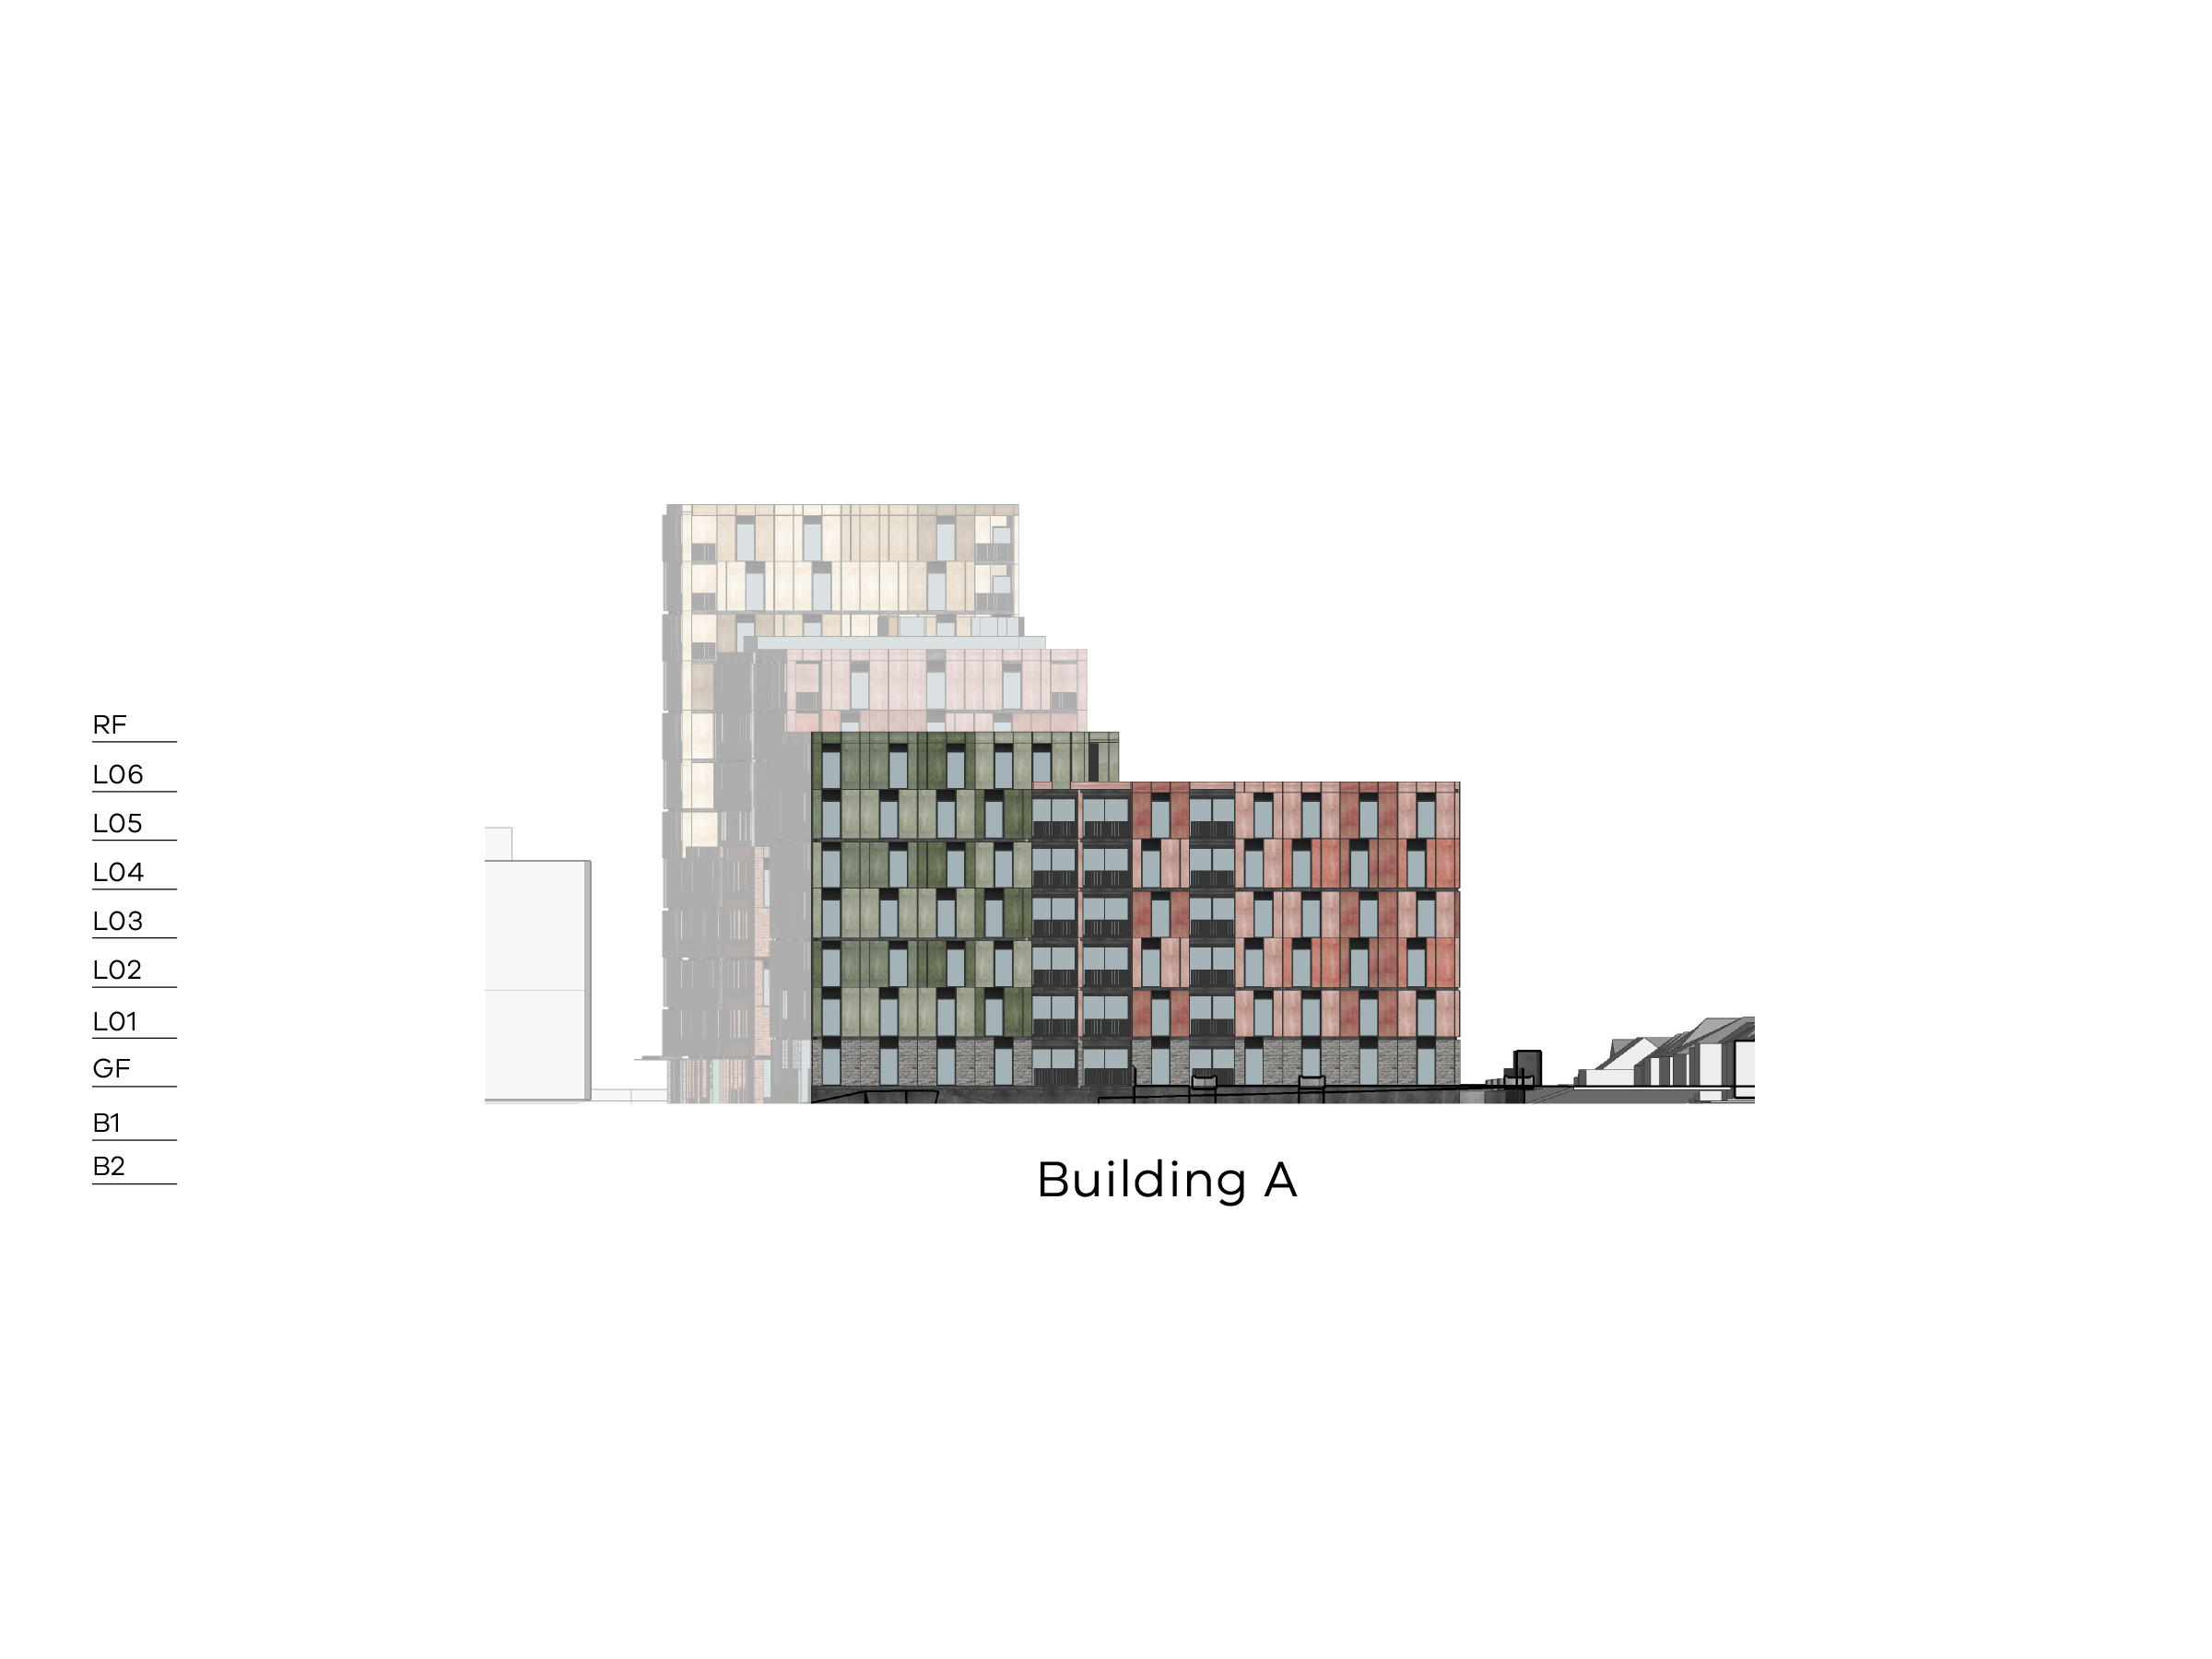 Diagram showing the height of building A as seen from High Street. Building A has 2 basement levels, a ground floor. level 1-6 and a flat roof. You can see buildings B and D in the background.